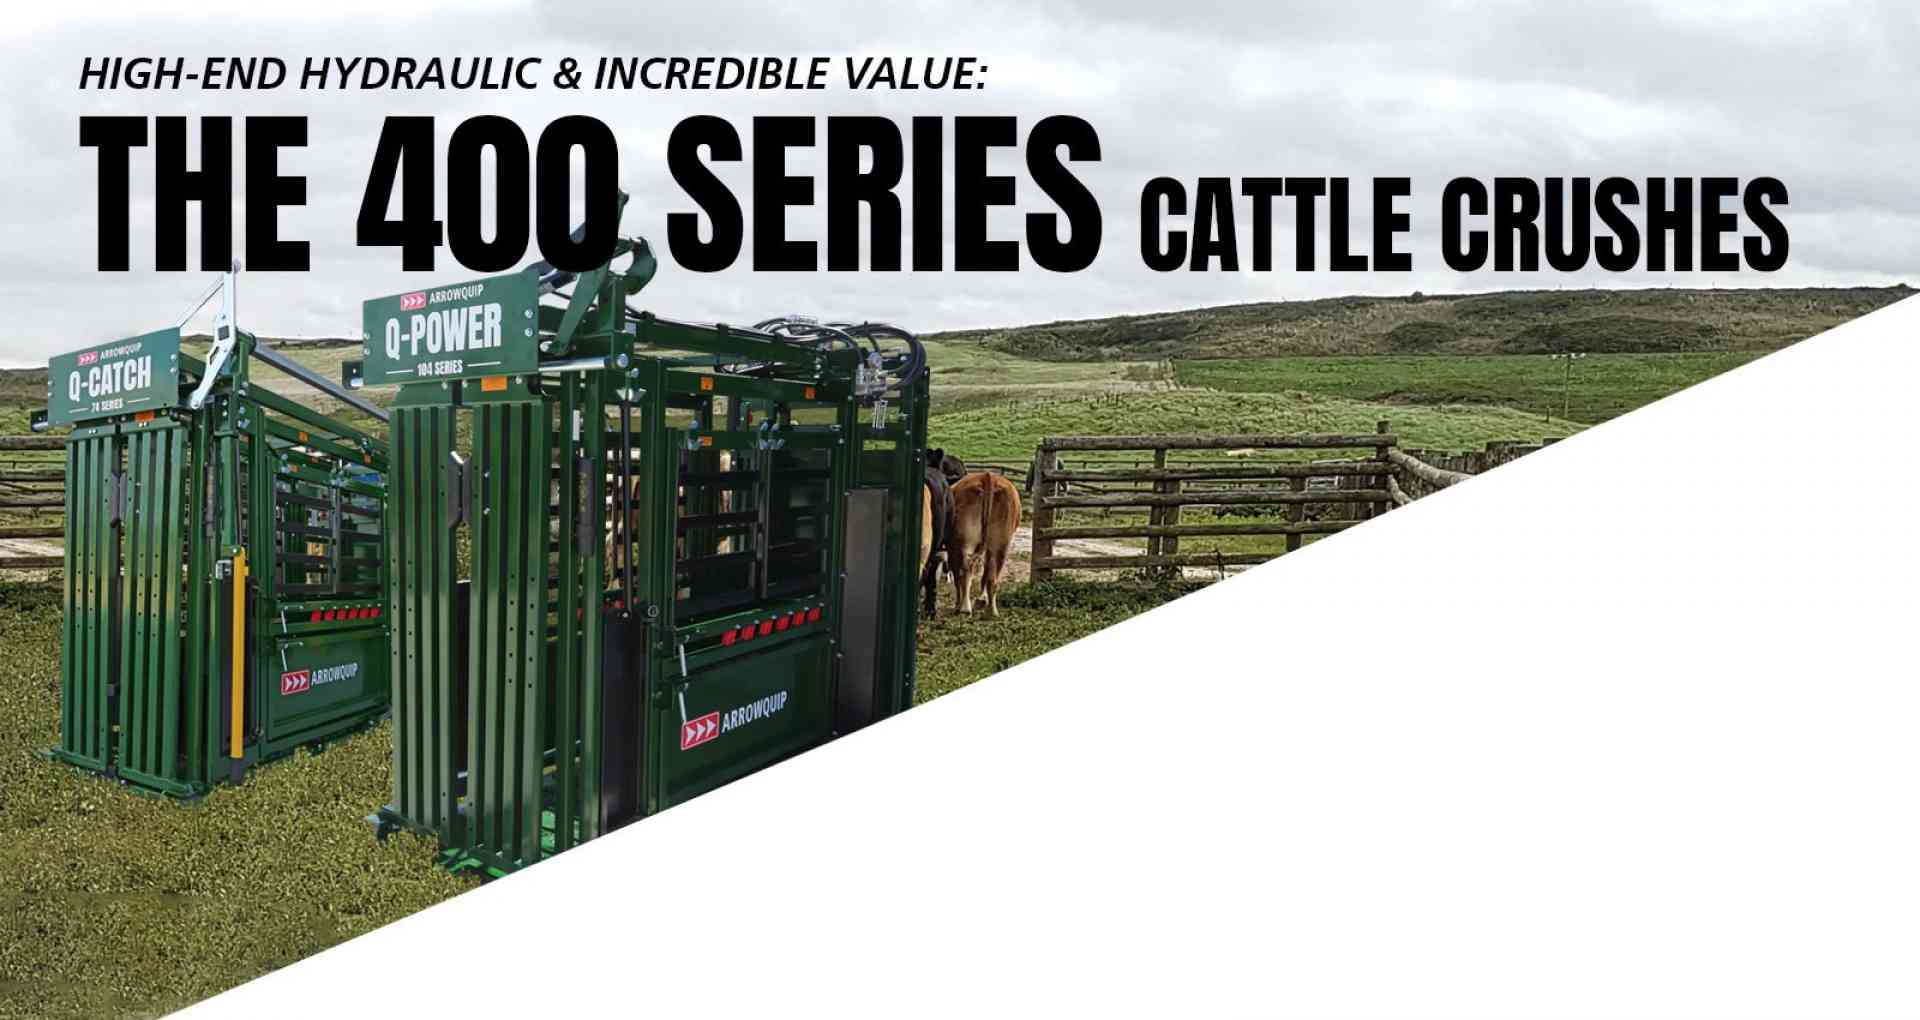 400 Series Cattle Crushes